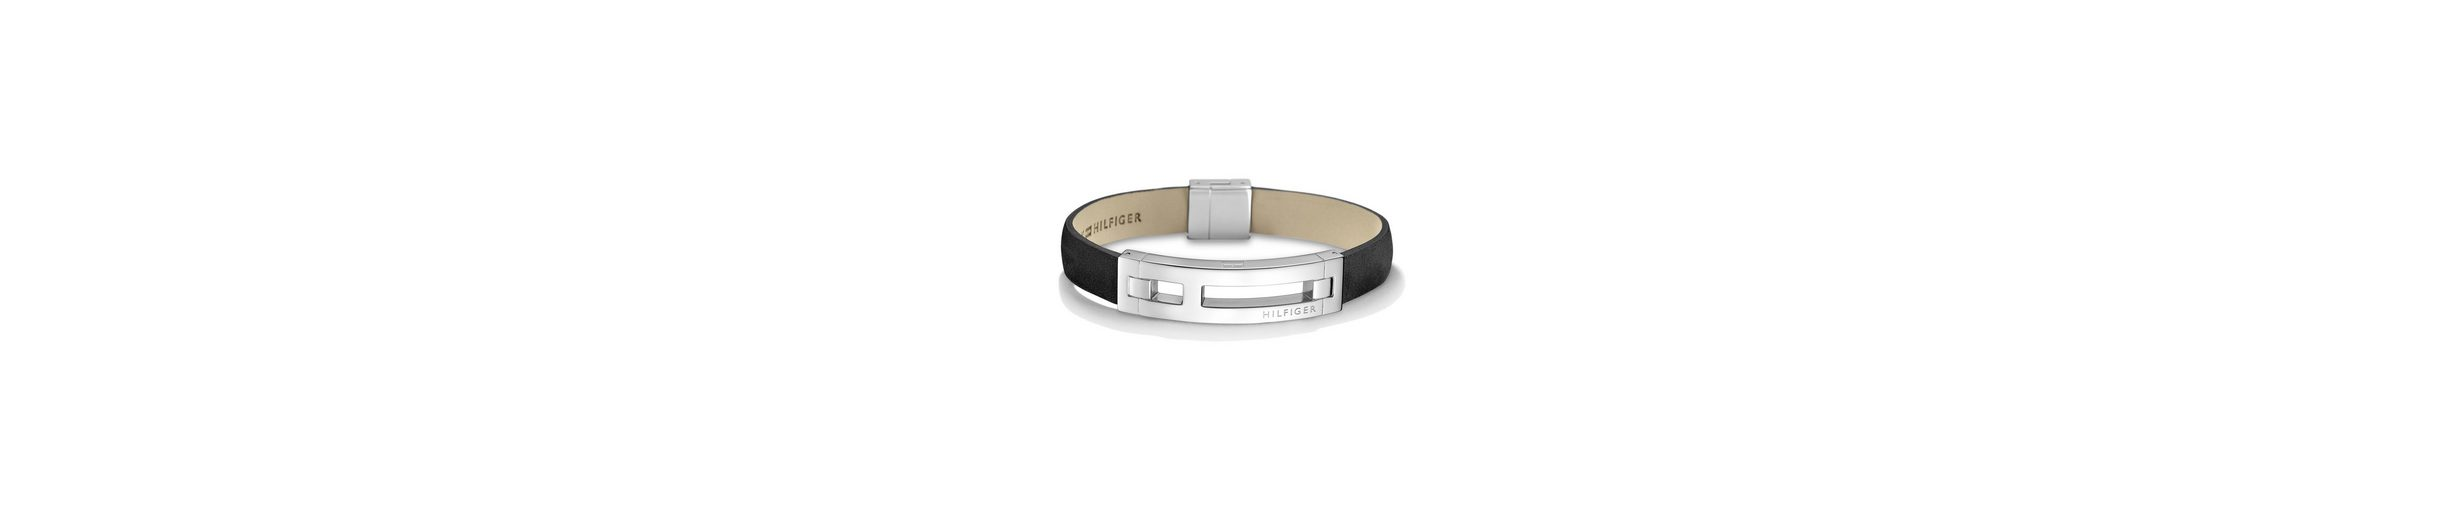 Tommy Hilfiger Armband »Men's Casual, 2700875«